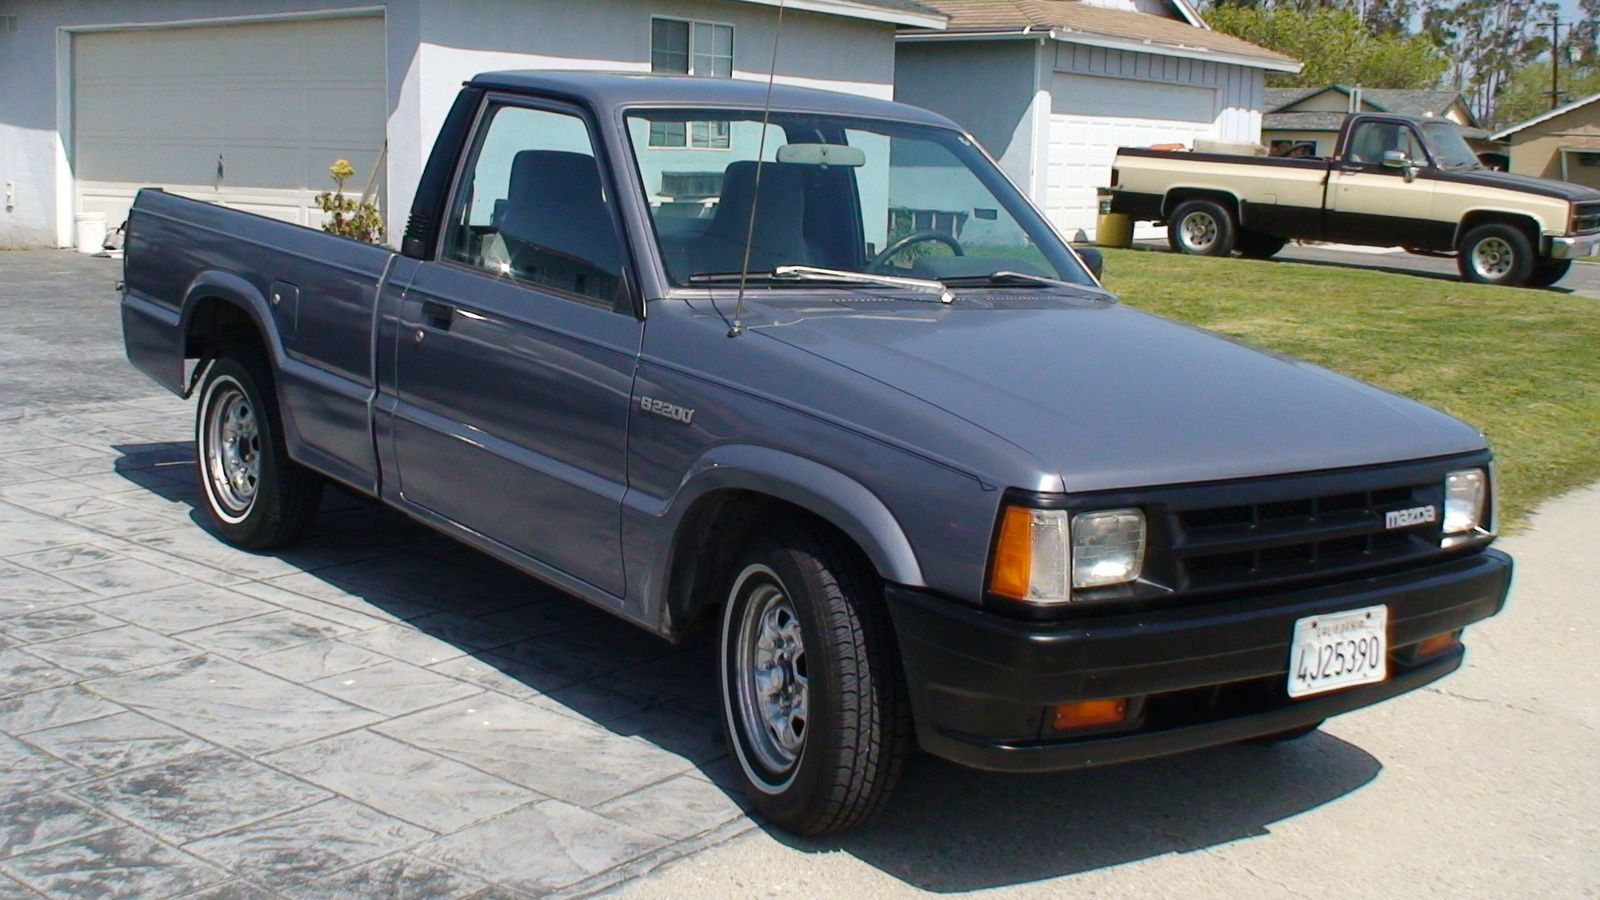 1991 mazda b series pickup 2 dr b2200 standard cab sb 1991 mazda b2200 shortbed passenger front. Black Bedroom Furniture Sets. Home Design Ideas